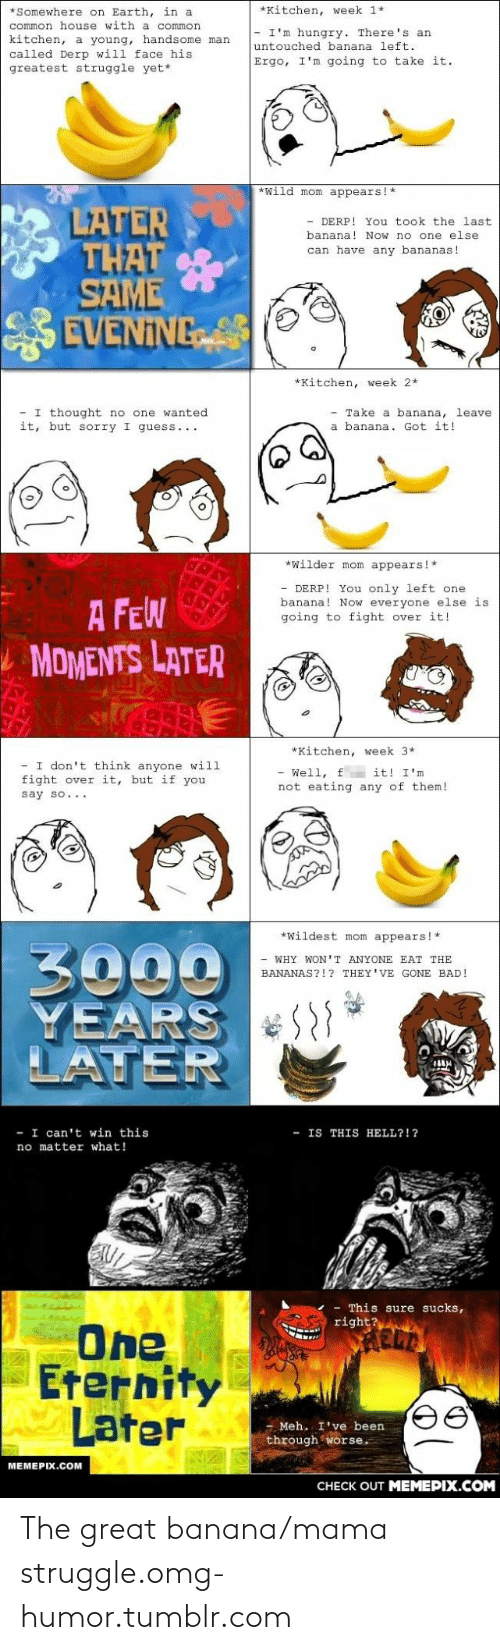 I Cant Win: *Somewhere on Earth, in a  *Kitchen, week 1*  common house with a common  - I'm hungry. There's an  kitchen, a young, handsome man  called Derp will face his  greatest struggle yet*  untouched banana left.  Ergo, I'm going to take it.  *wild mom appears!*  LATER  THAT  SAME  EVENING  - DERP! You took the last  banana! Now no one else  can have any bananas!  *Kitchen, week 2*  - I thought no one wanted  it, but sorry I guess...  Take a banana, leave  a banana. Got it!  *Wilder mom appears!*  - DERP! You only left one  banana! Now everyone else is  going to fight over it!  A FEW  L MOMENTS LATER  *Kitchen, week 3*  I don't think anyone will  fight over it, but if you  - Well, f it! I'm  not eating any of them!  say so...  *Wildest mom appears!*  3000  YEARS  LATER  - WHY WON'T ANYONE EAT THE  BANANAS?!? THEY'VE GONE BAD!  I can't win this  no matter what!  - IS THIS  HELL?!?  This sure sucks,  right?  One  Eternity  Later  - Meh. I've been  through worse.  MEMEPIX.COM  CНЕCK OUT MЕМЕРIХ.COM The great banana/mama struggle.omg-humor.tumblr.com